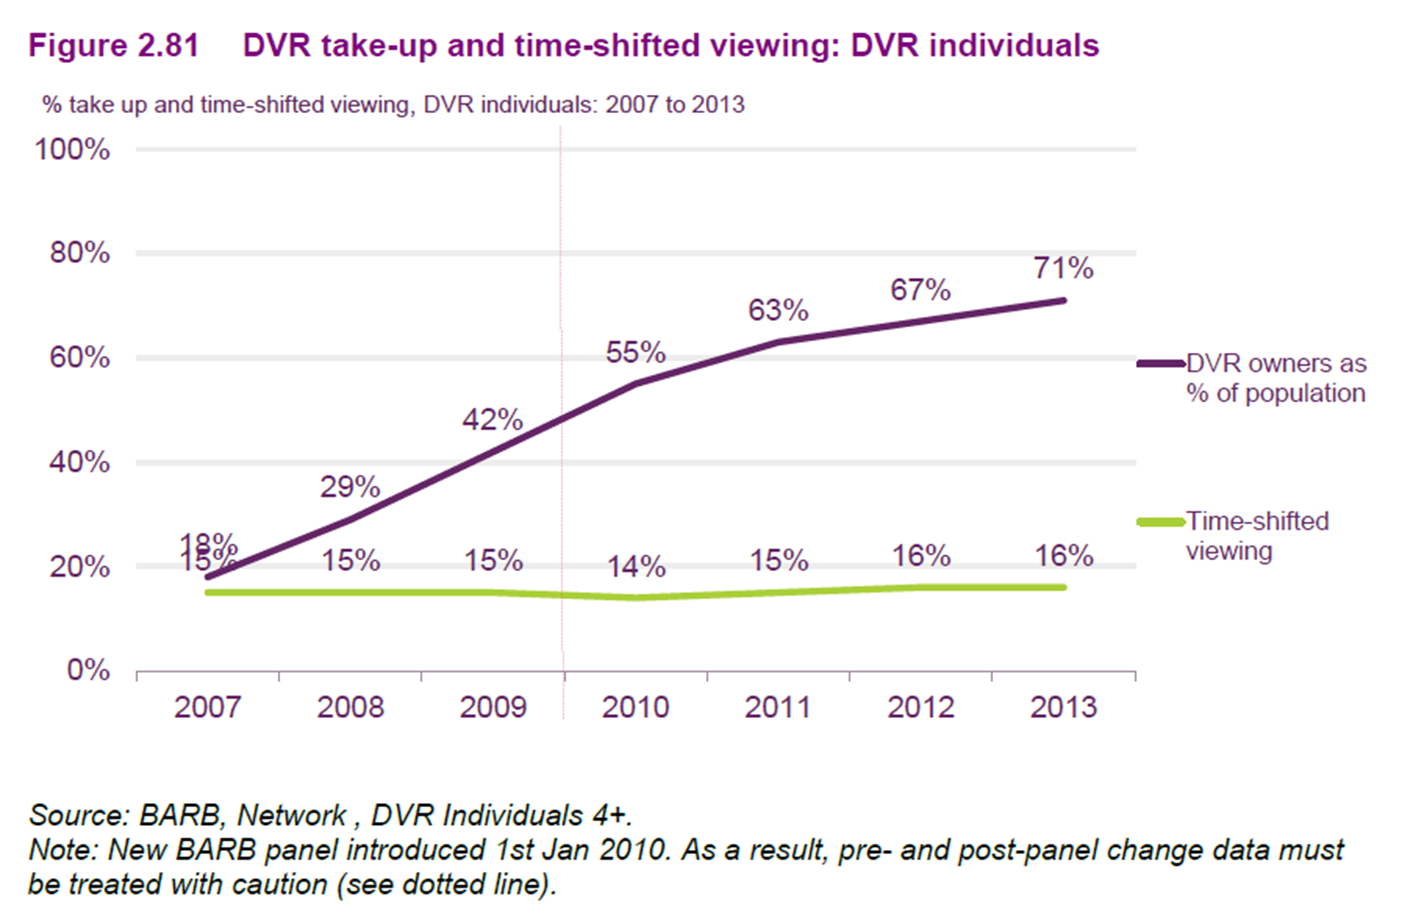 Hot, dvr market penetration